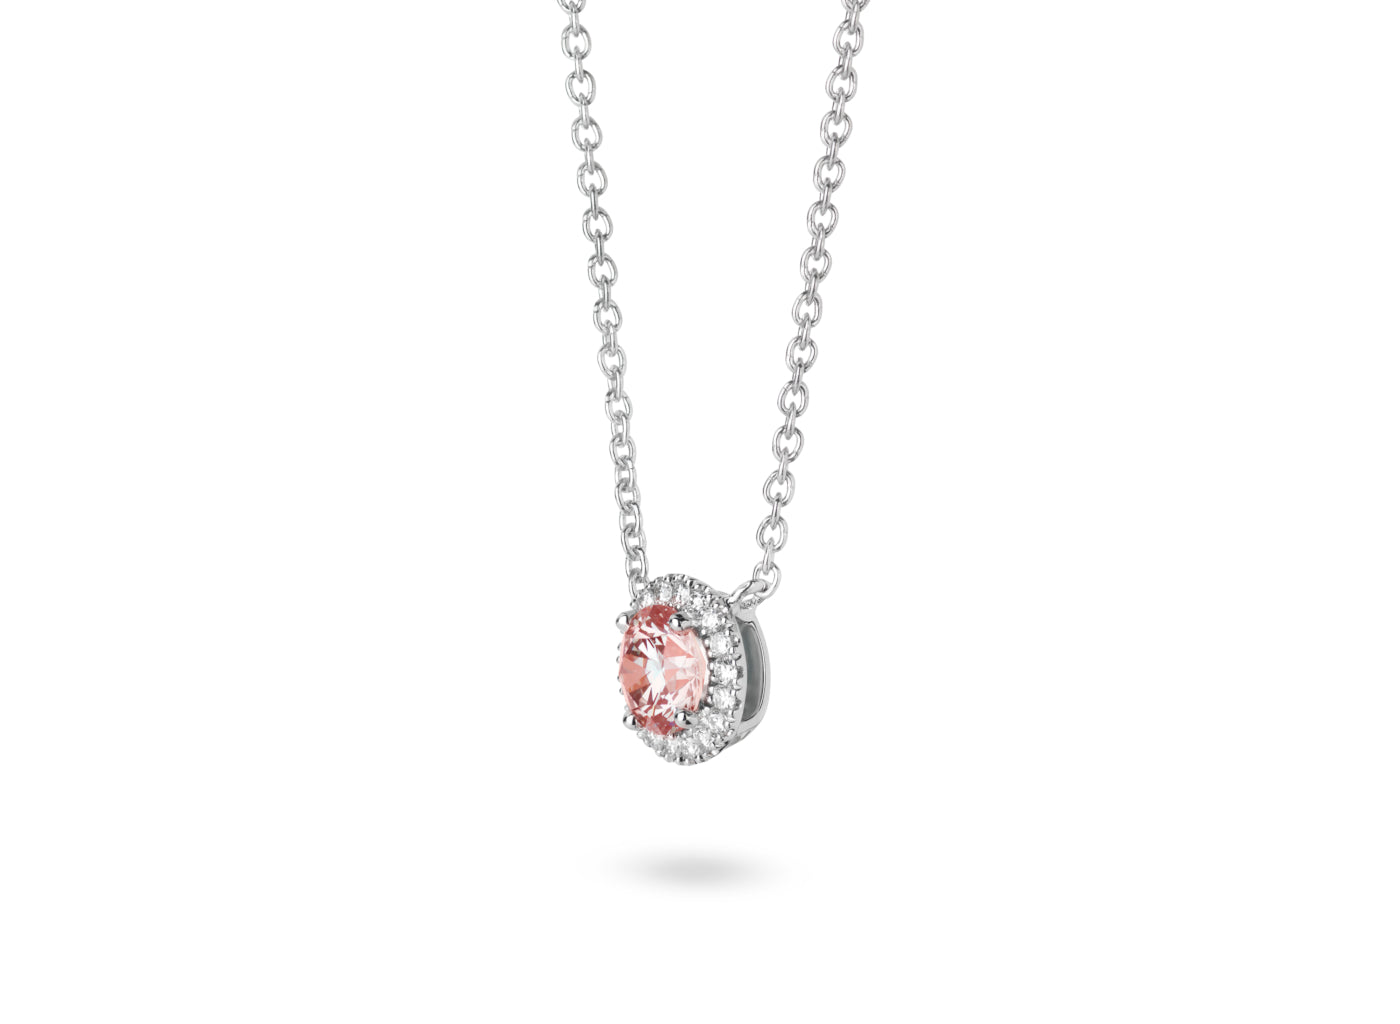 Side view of Halo 3/4 carat pendant with pink and white diamonds